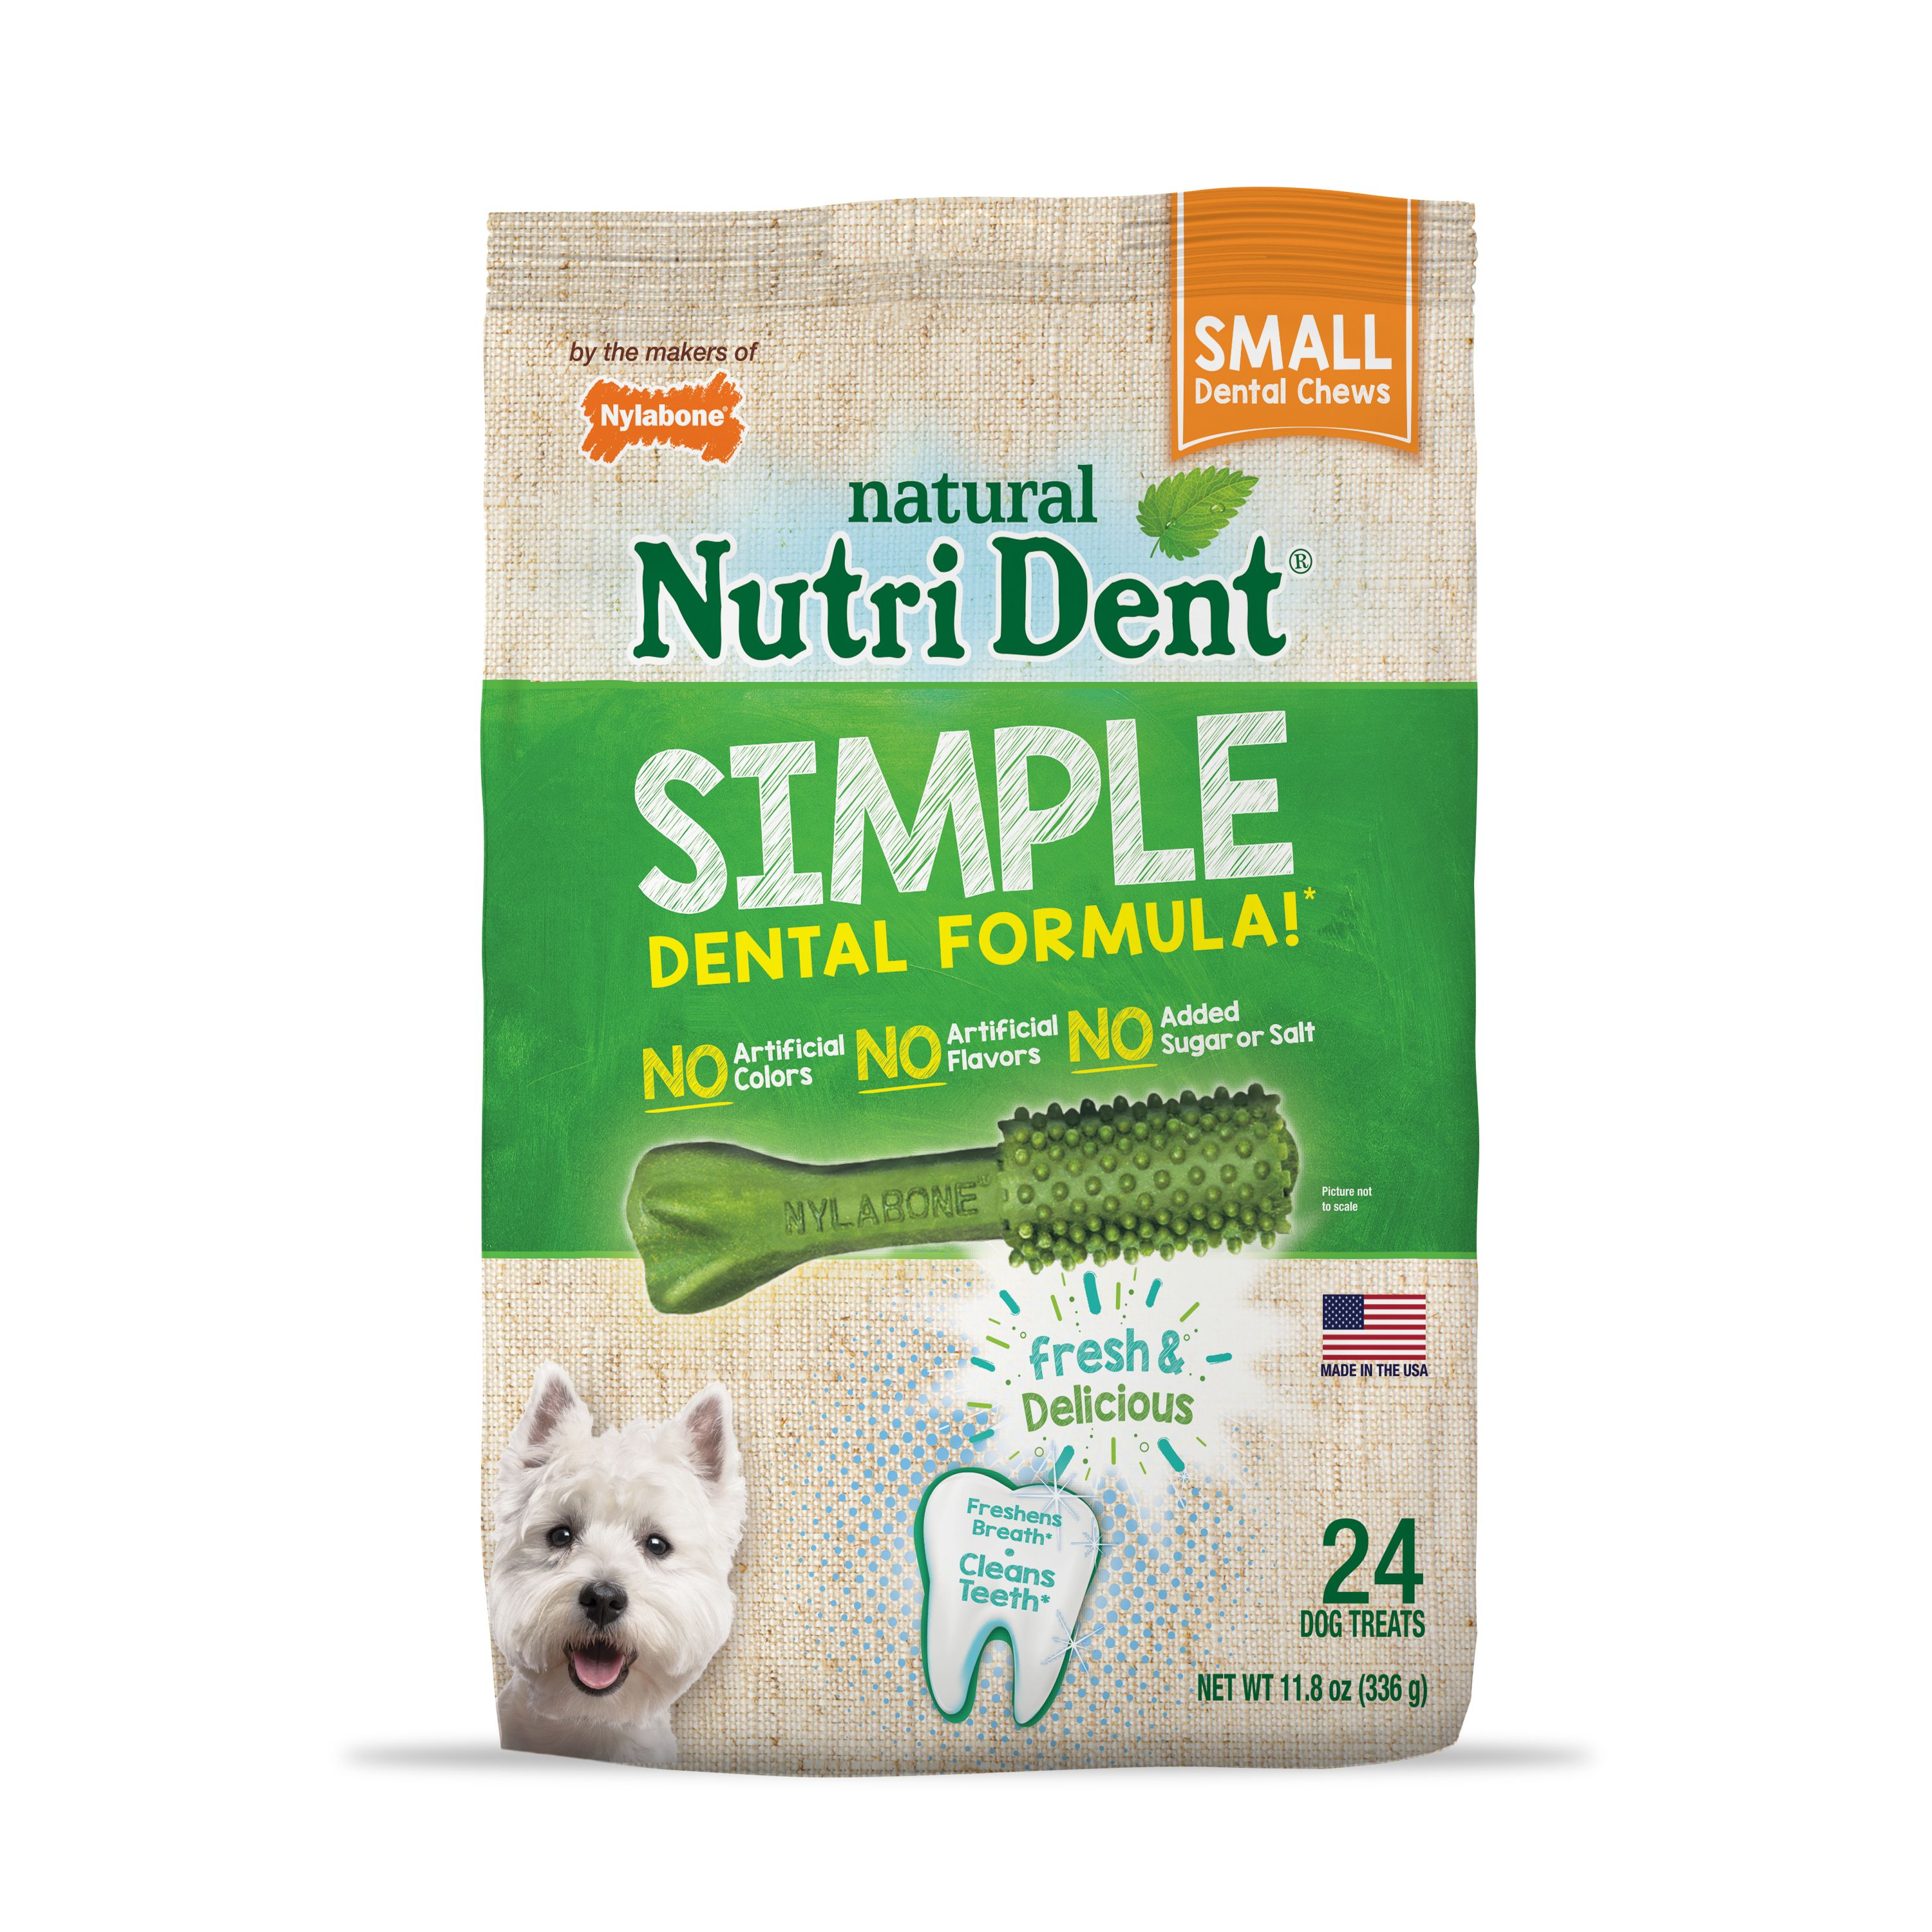 Nylabone Nutri Dent Simple Dental Formula Dog Chew Treats, Small, 24 Count